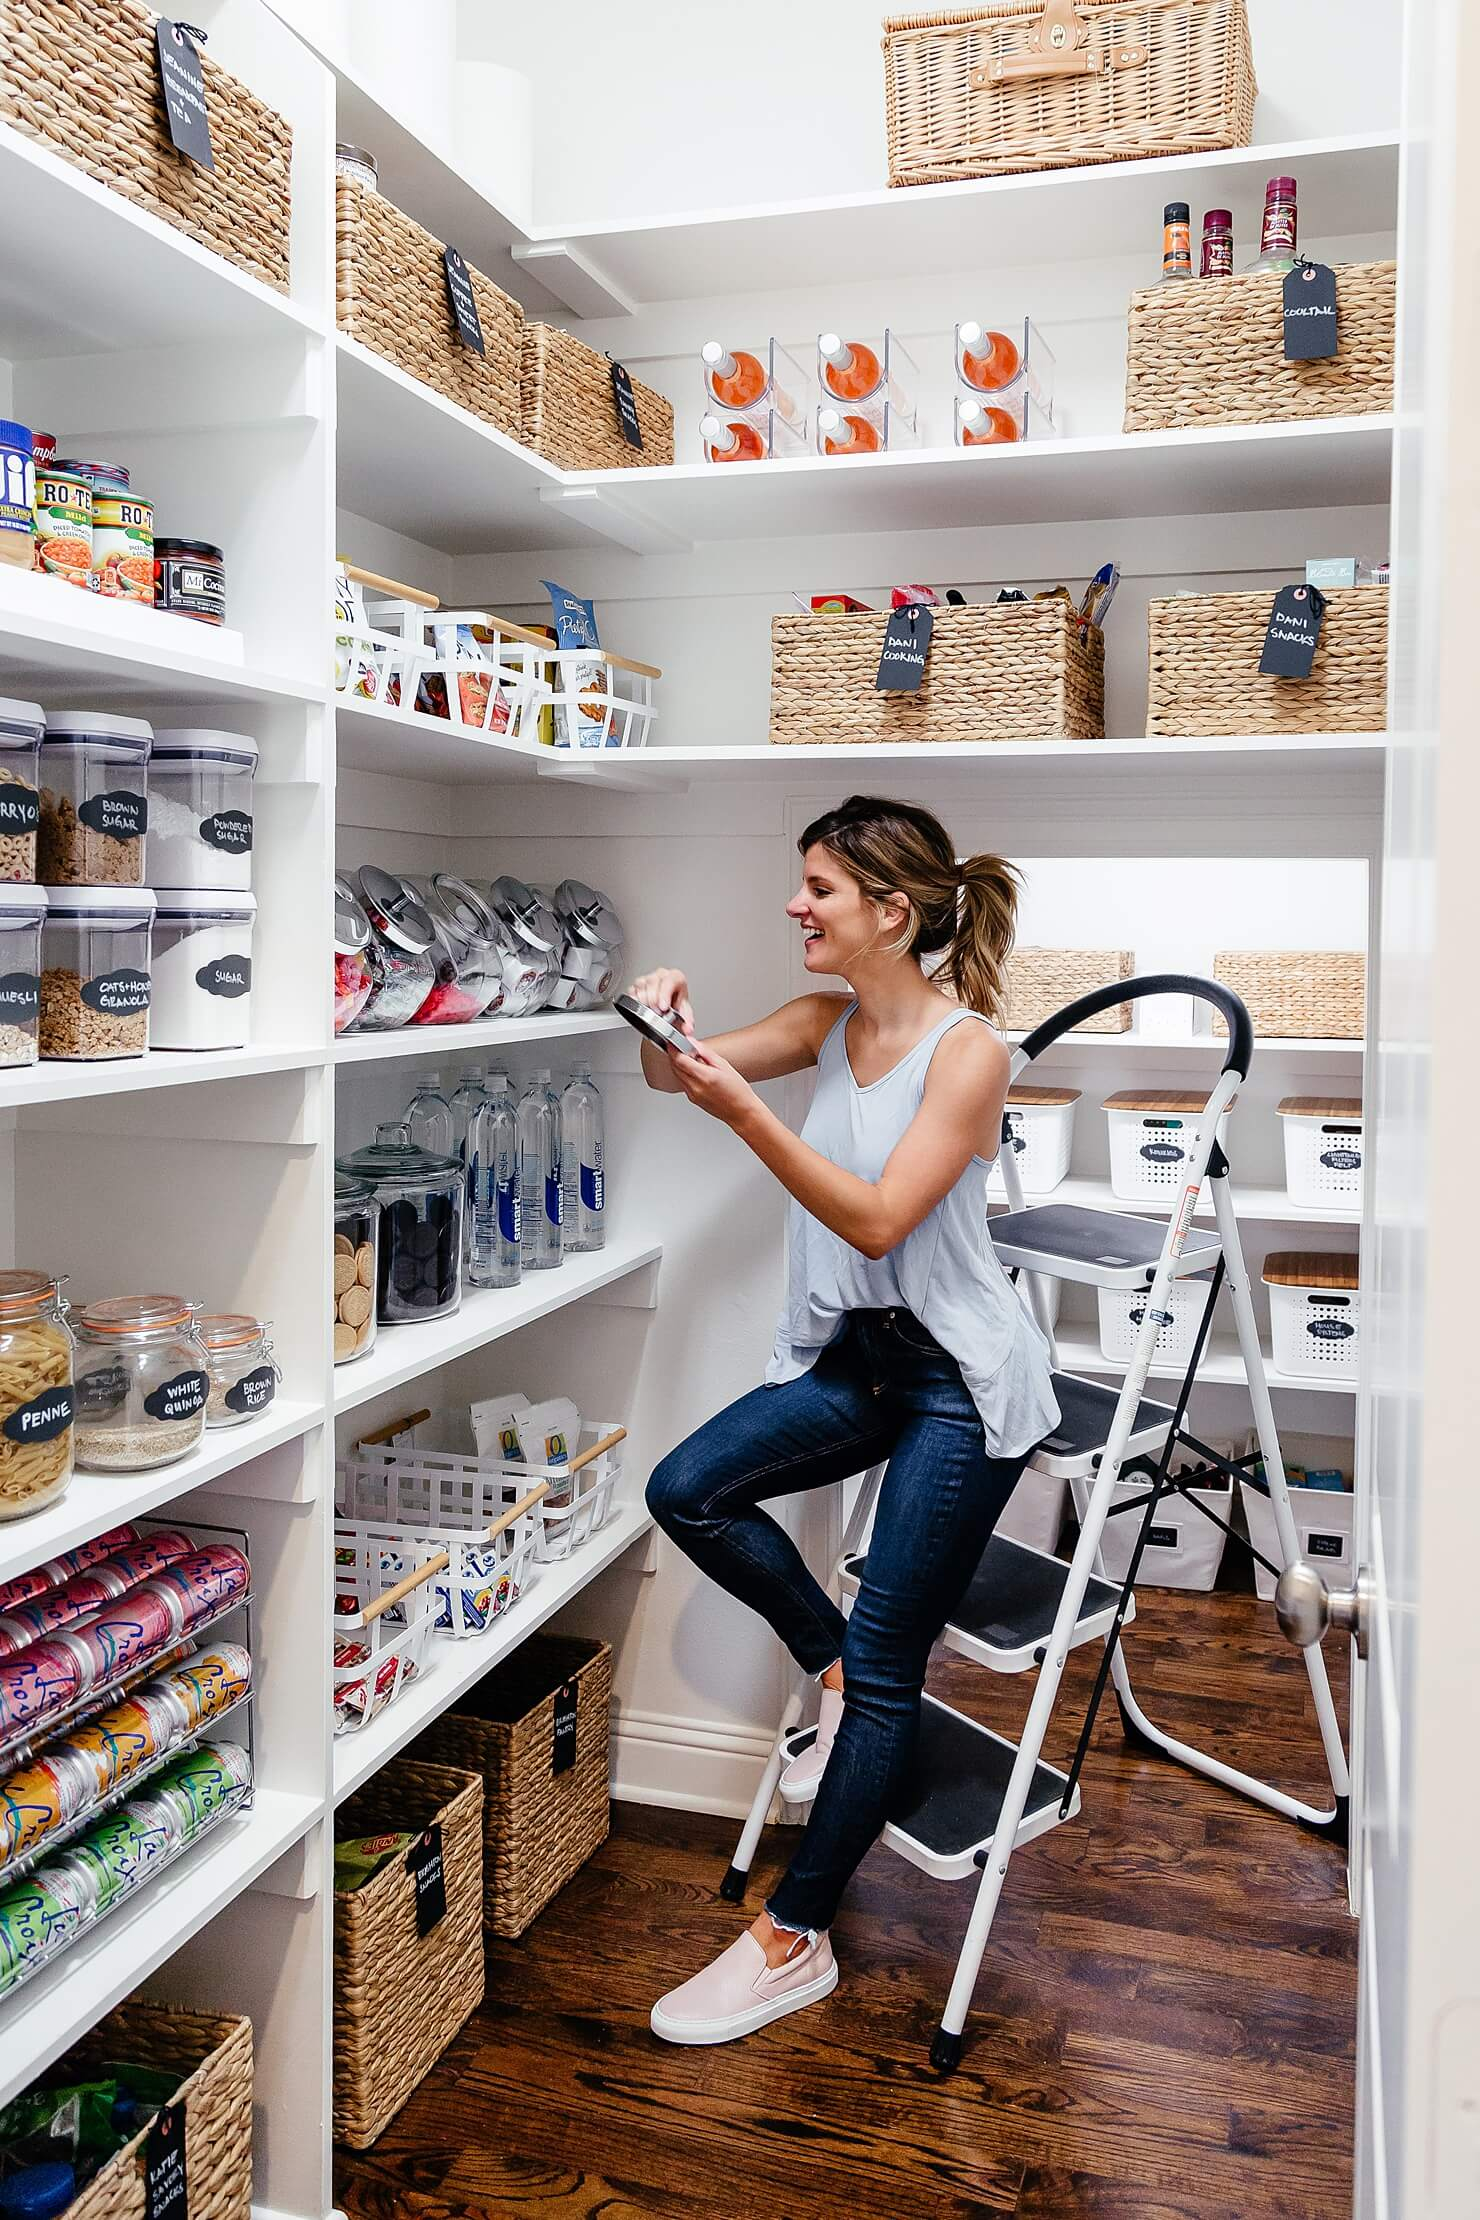 Pantry Organization Pantry Organization Ideas Tips For How To Organize Your Pantry